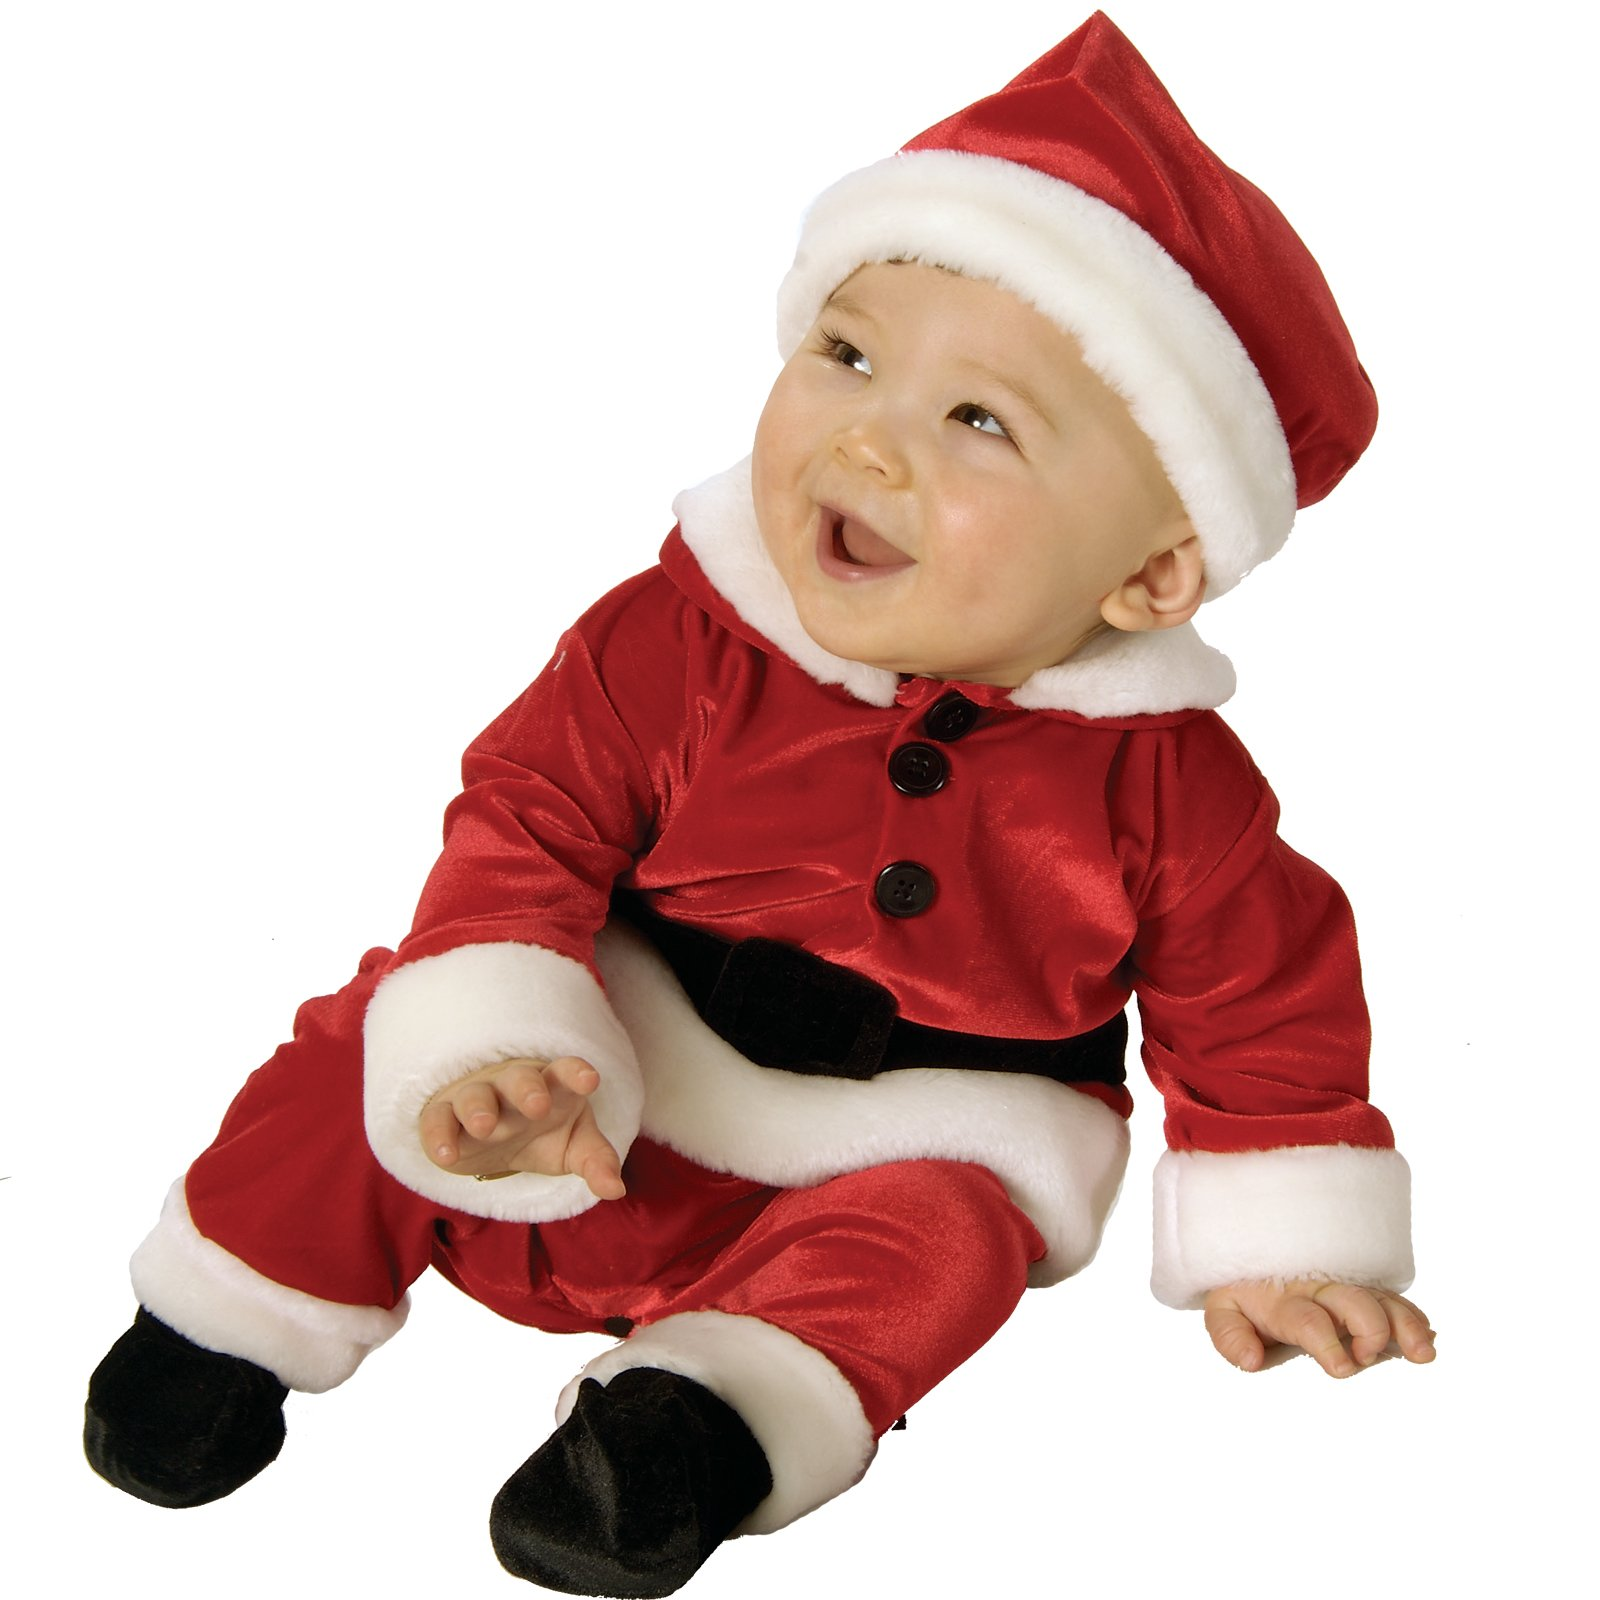 Baby Santa Cute Pictures Christmas High Quality Wallpapers